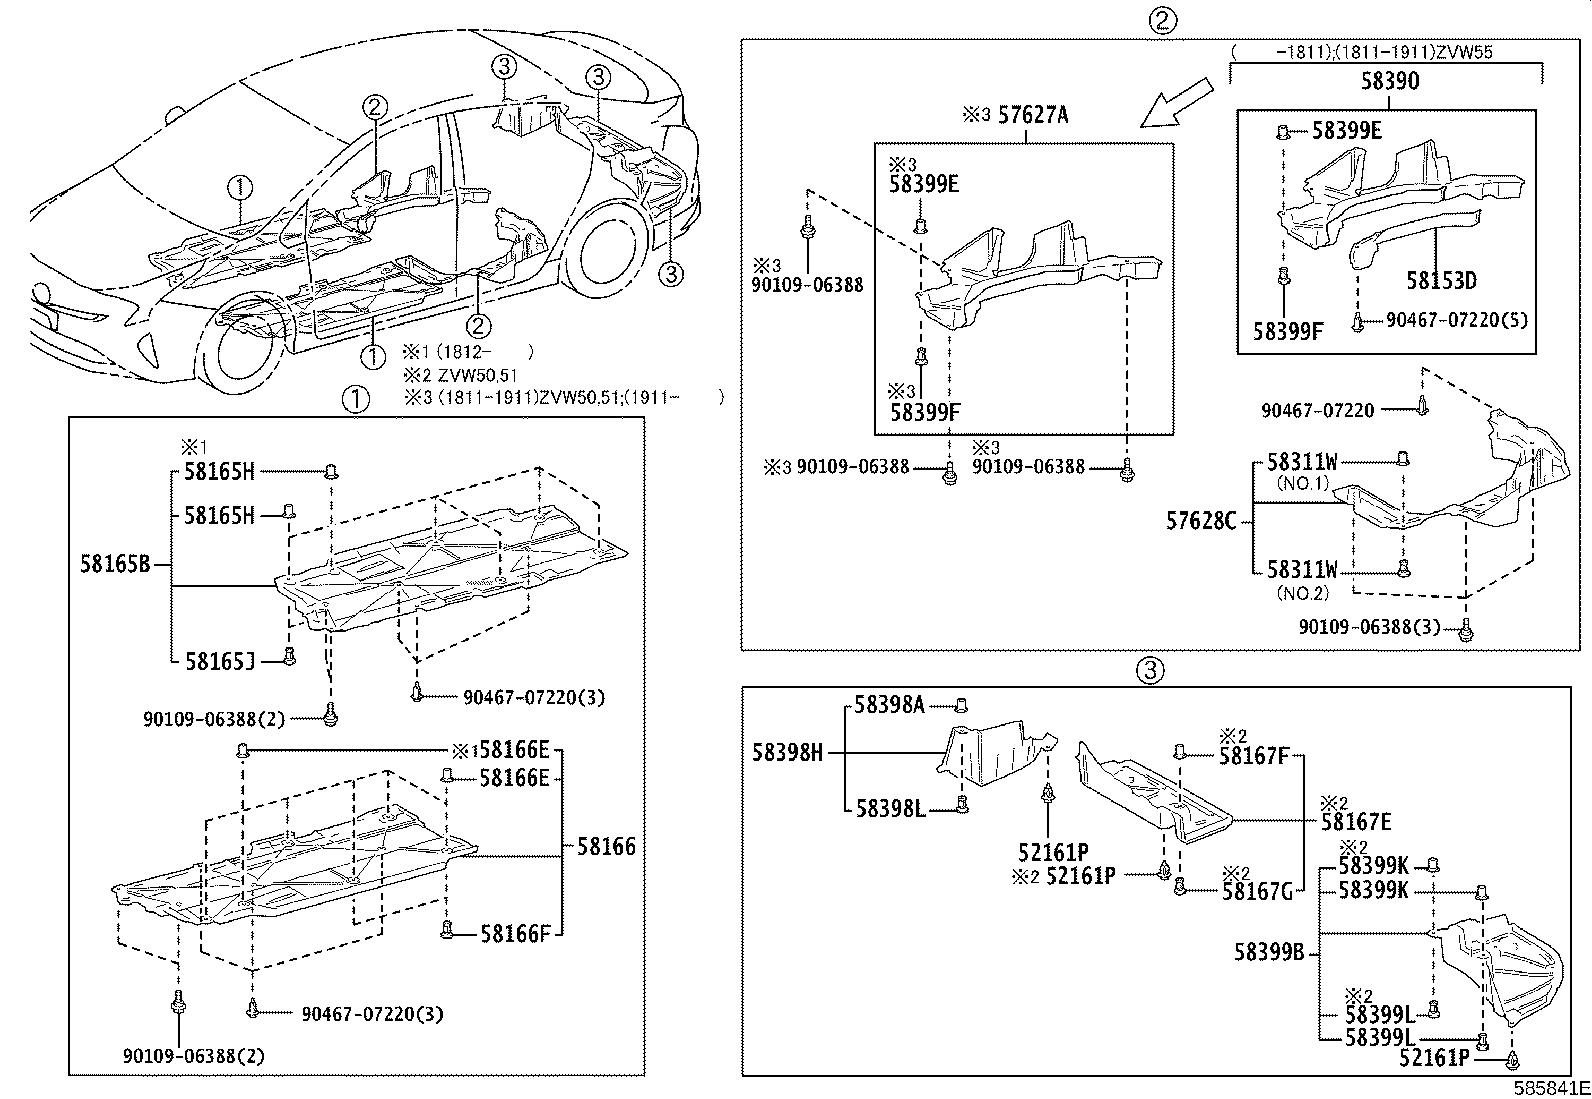 Diagram FLOOR PAN & LOWER BACK PANEL for your 2020 Toyota Prius